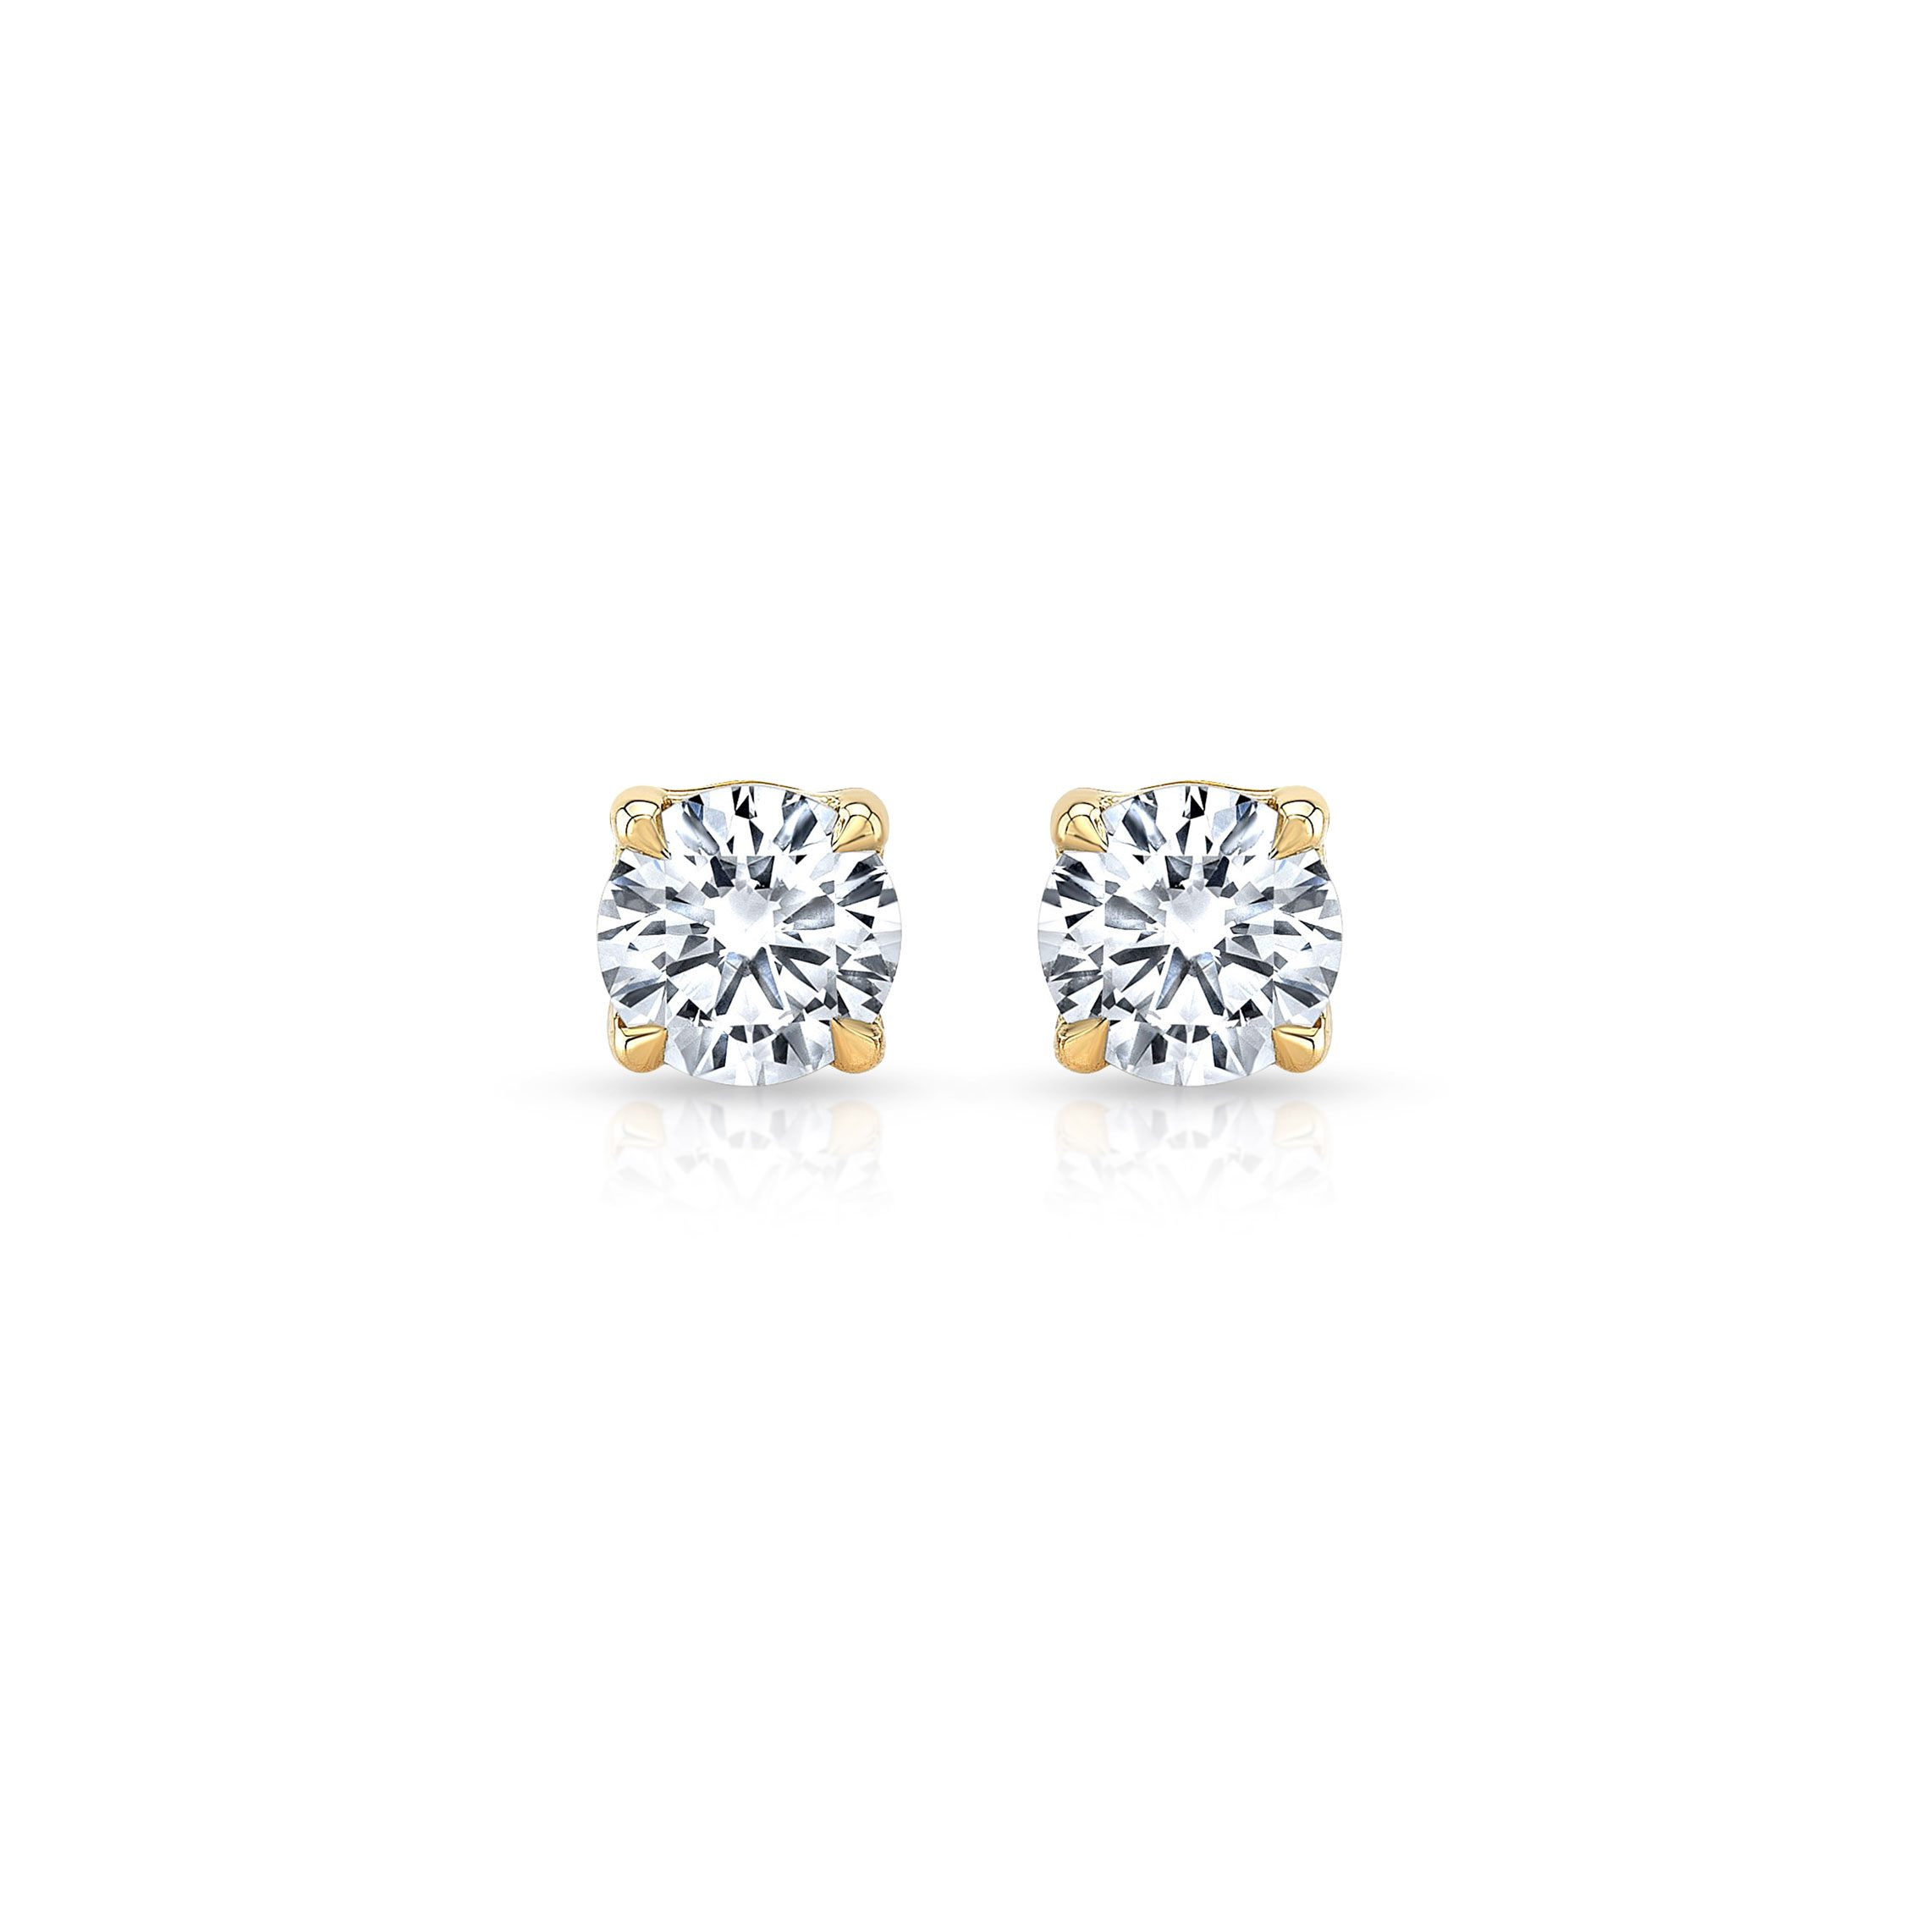 Carlie Round Brilliant Lab Grown Diamond Studs in Yellow Gold Product Shot from Oui by Jean Dousset